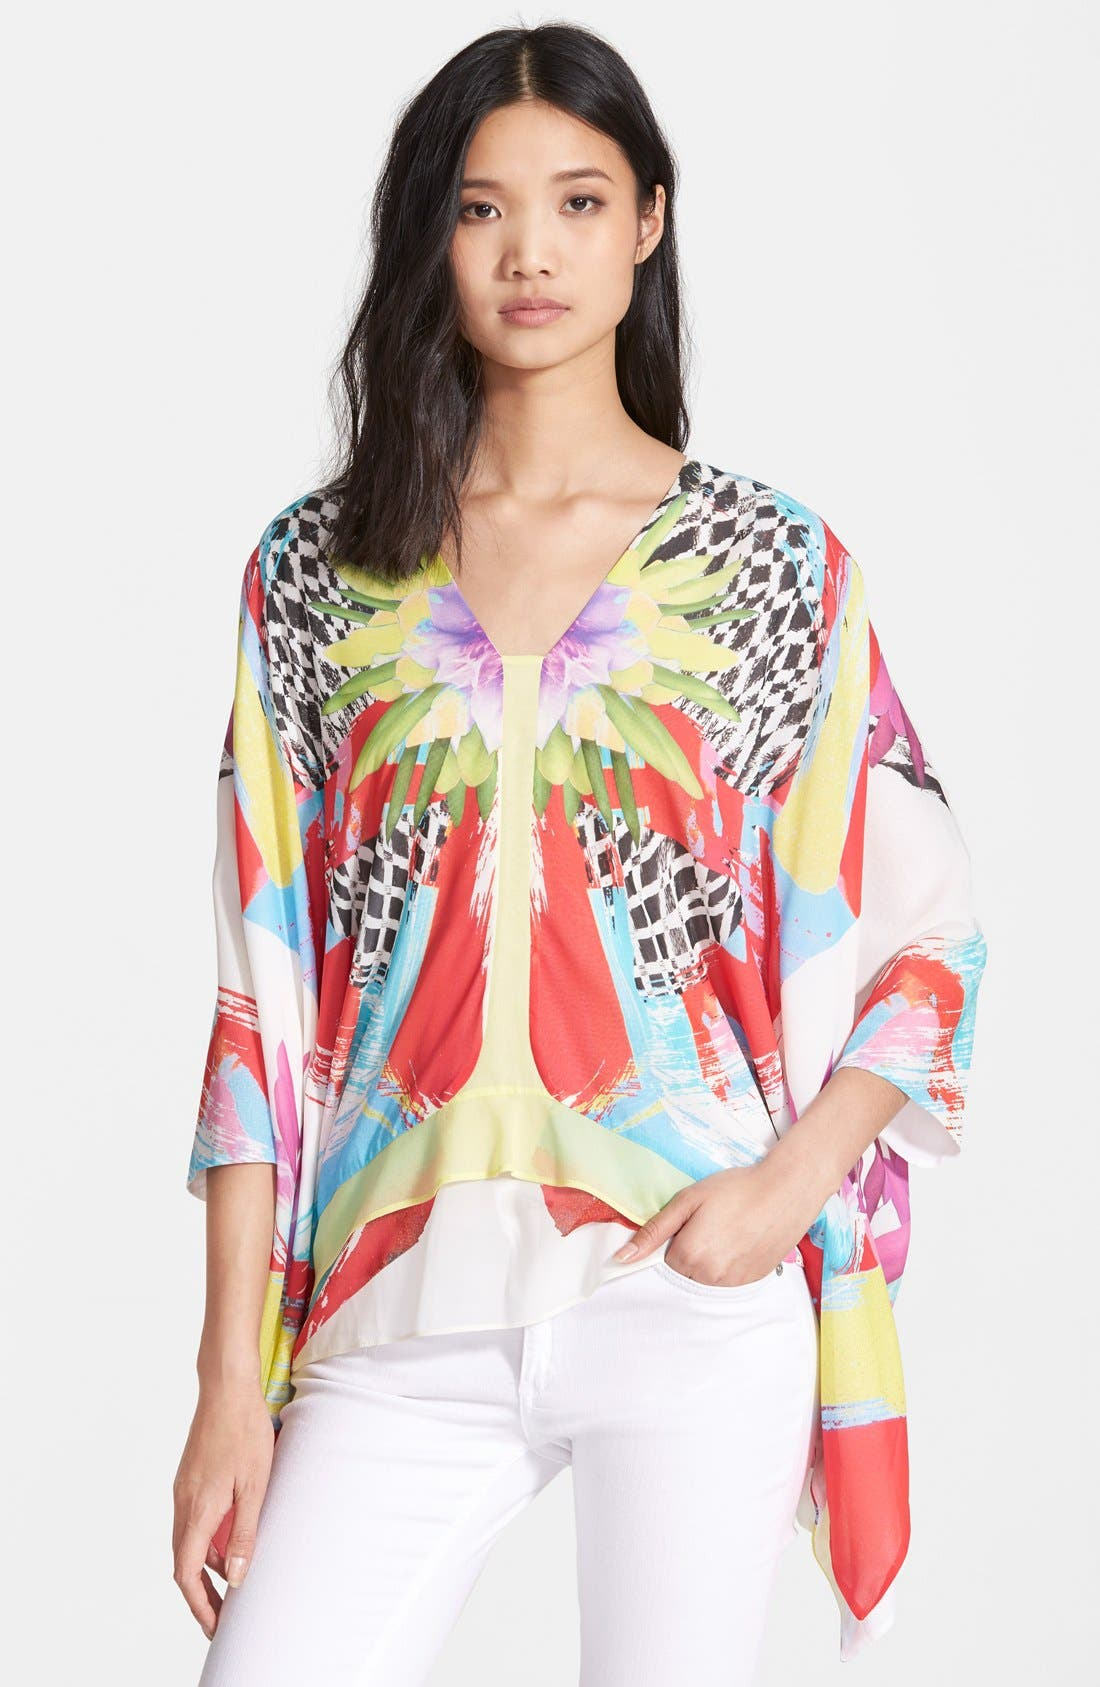 Main Image - Just Cavalli 'Kings Love' Print Stretch Silk Tunic Top